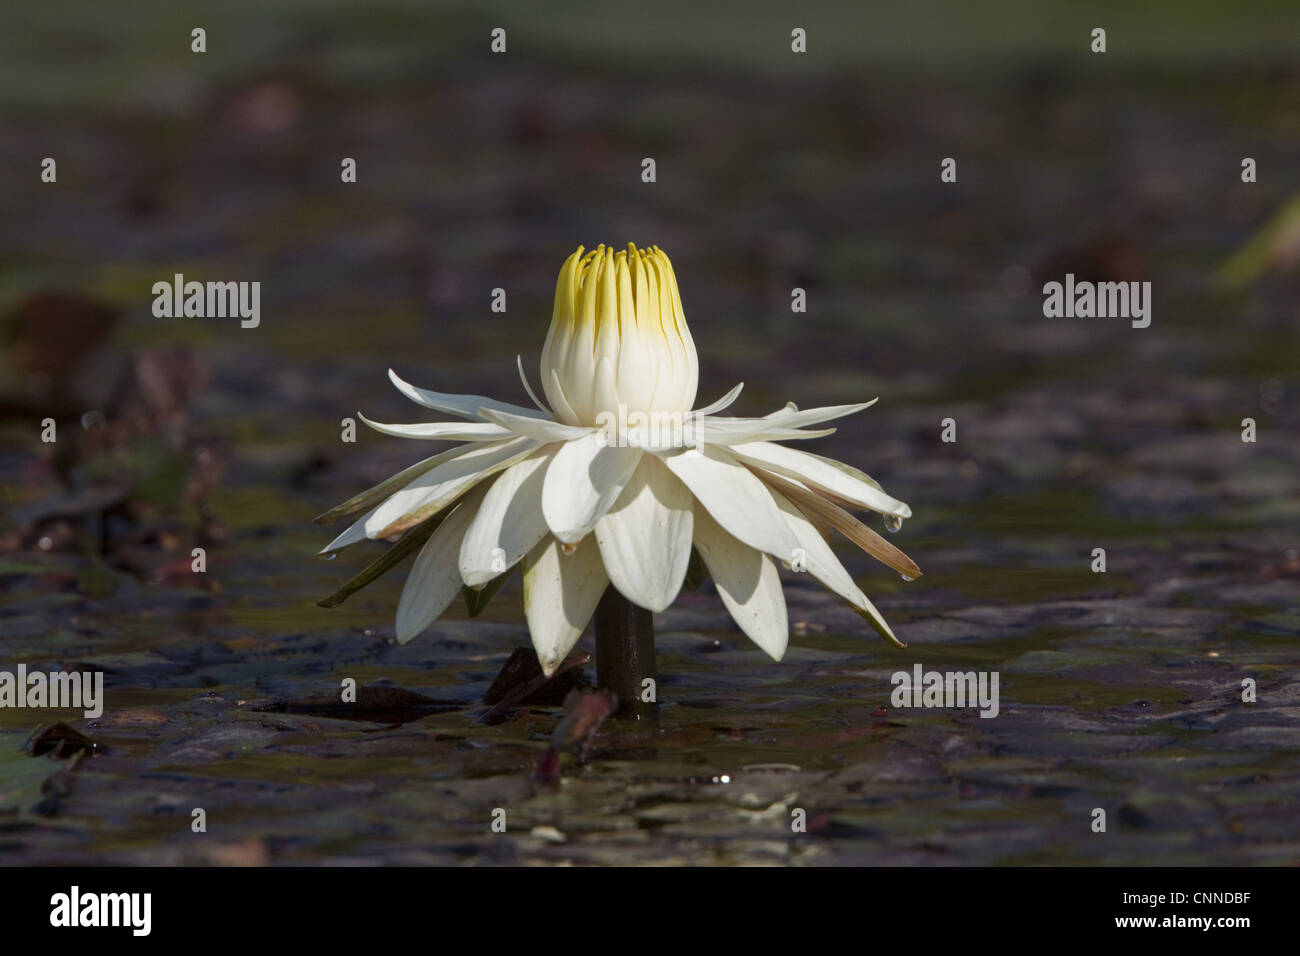 Nymphaea Lotus White Water Lily White Lotus Which Night Blooming